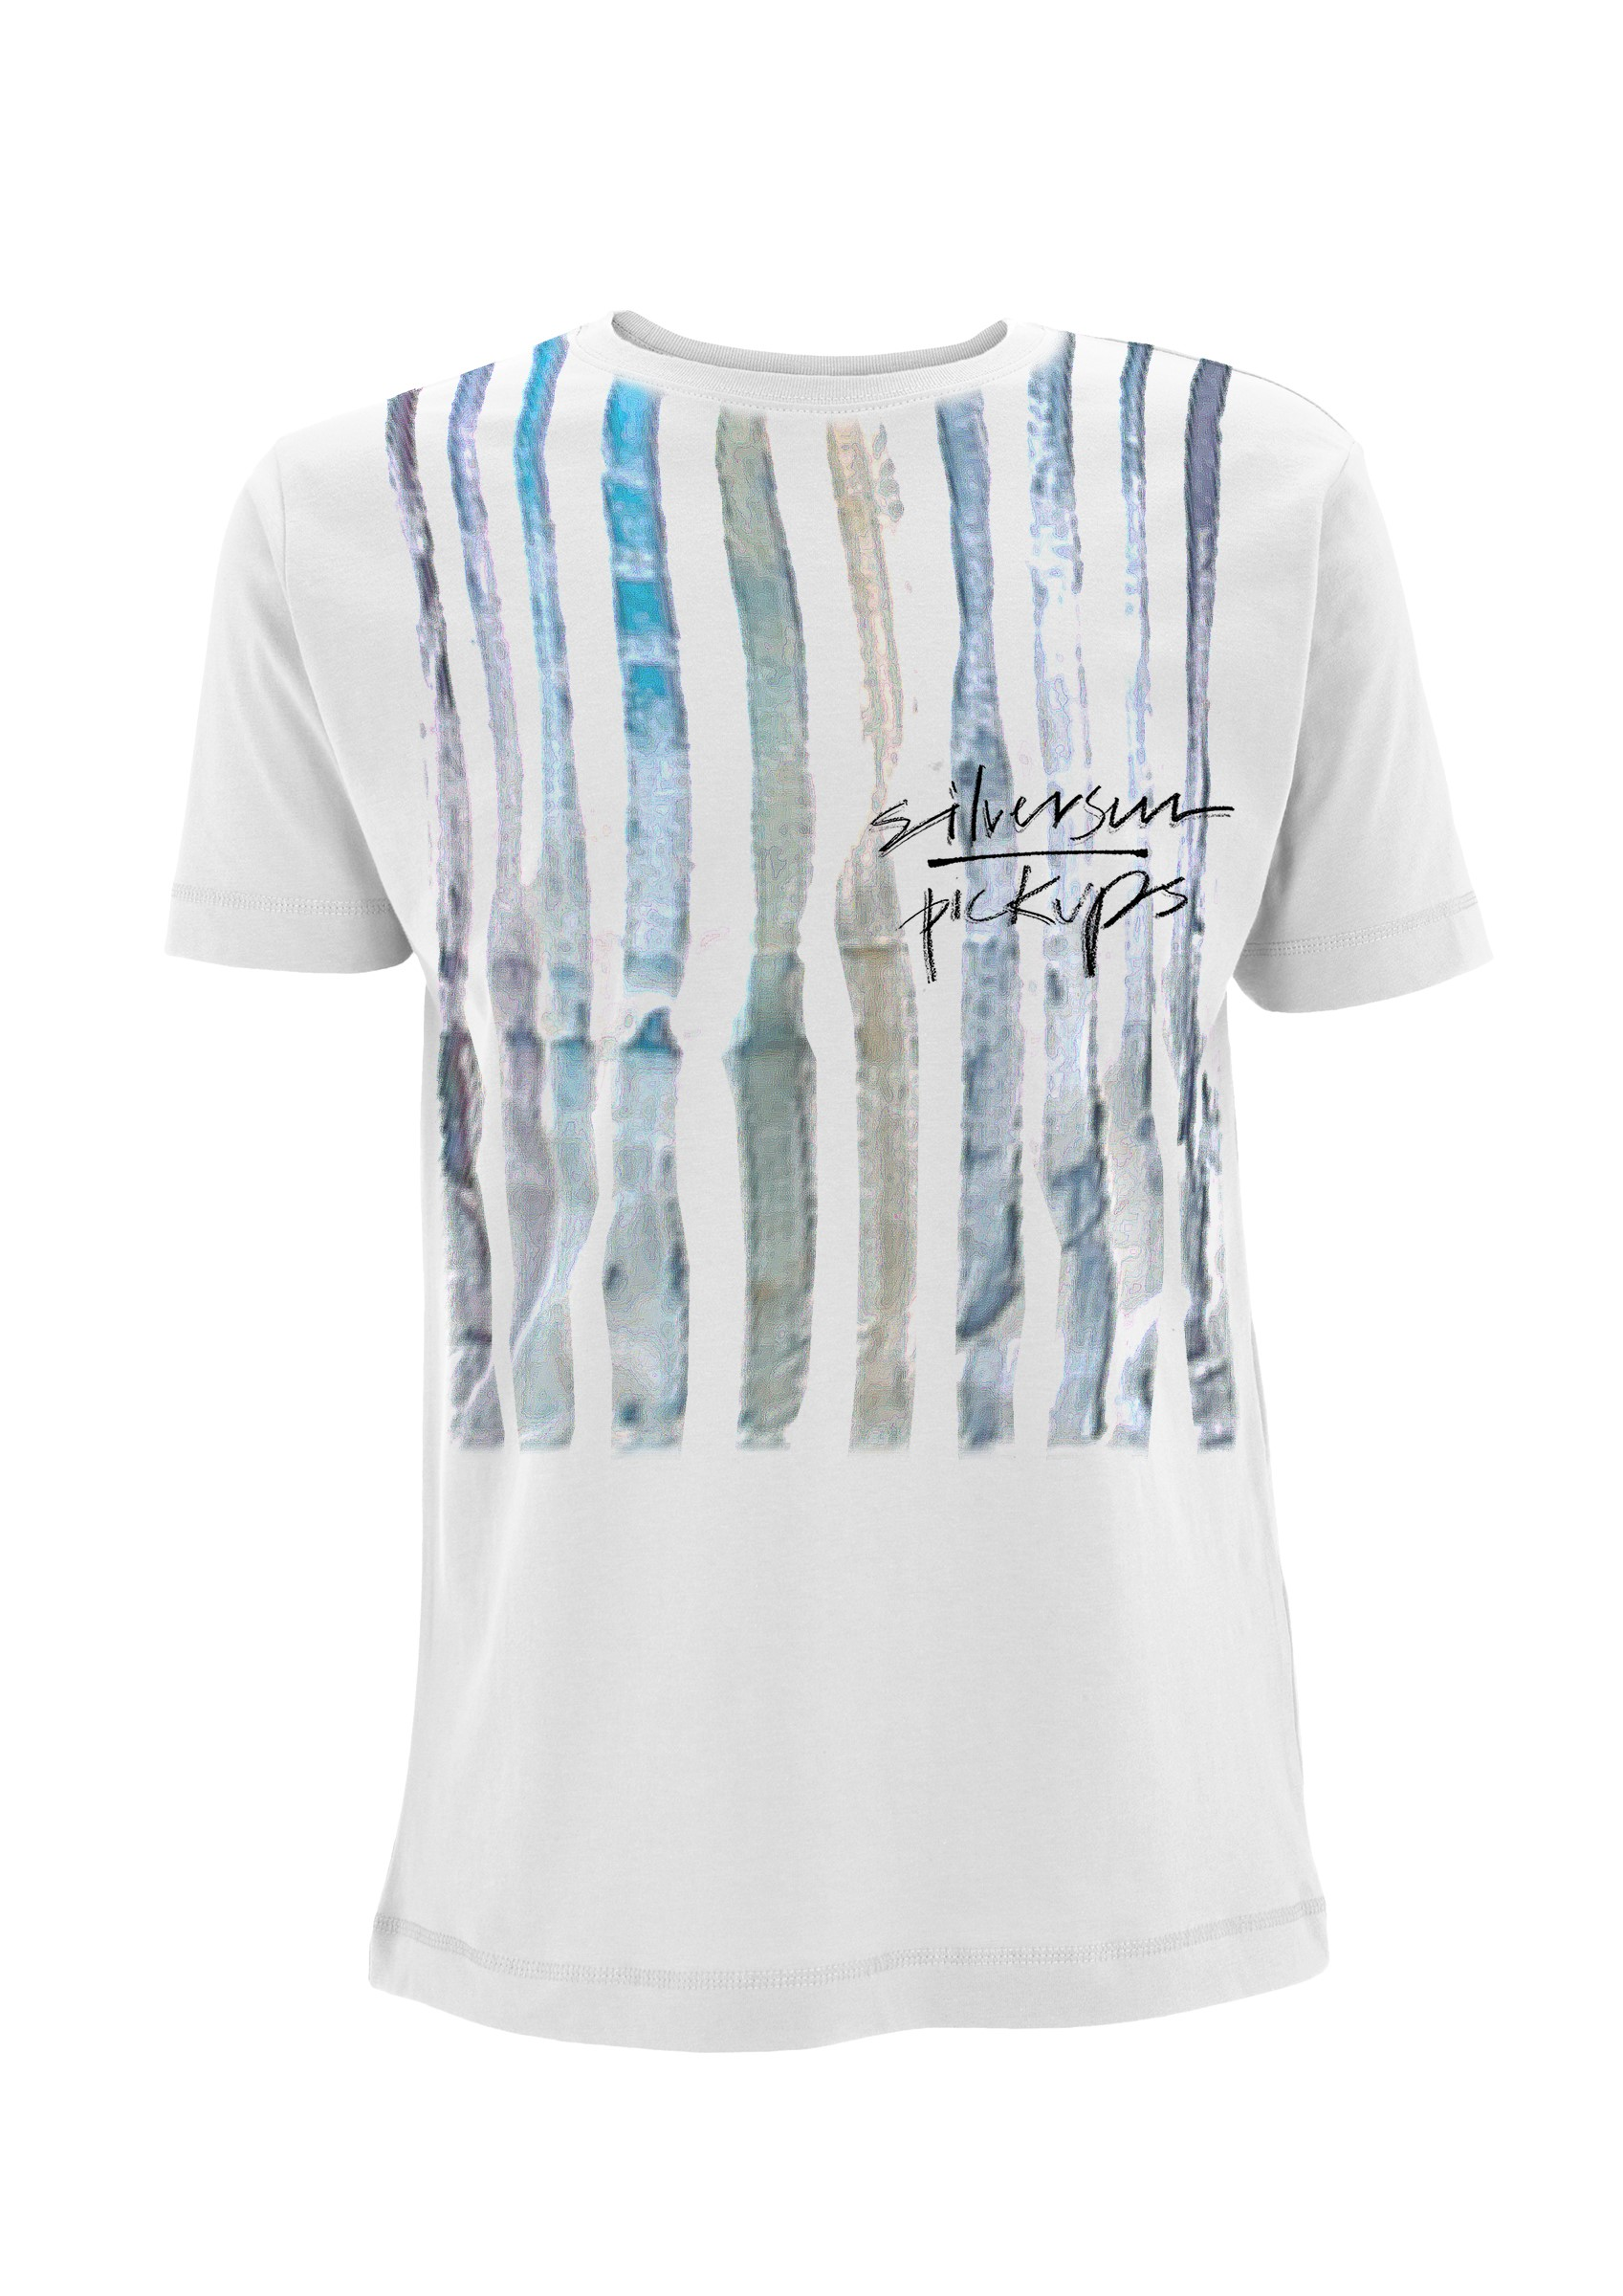 Paint Stripes Tee ONLINE EXCLUSIVE - Silversun Pickups